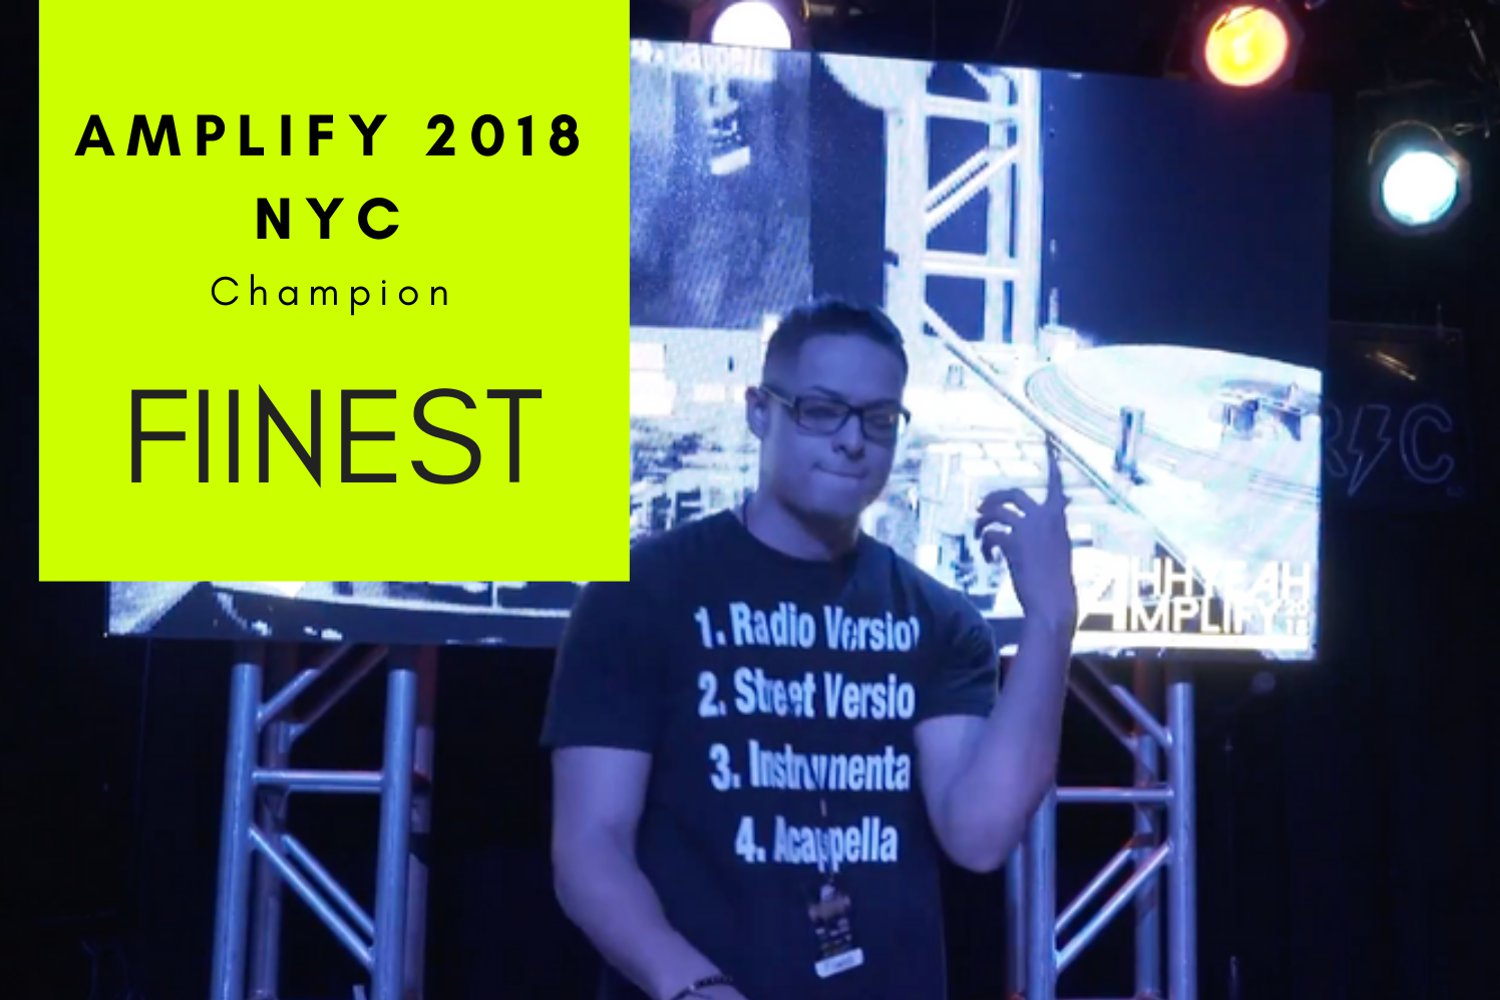 Peavey presents Amplify 2018 NYC Results